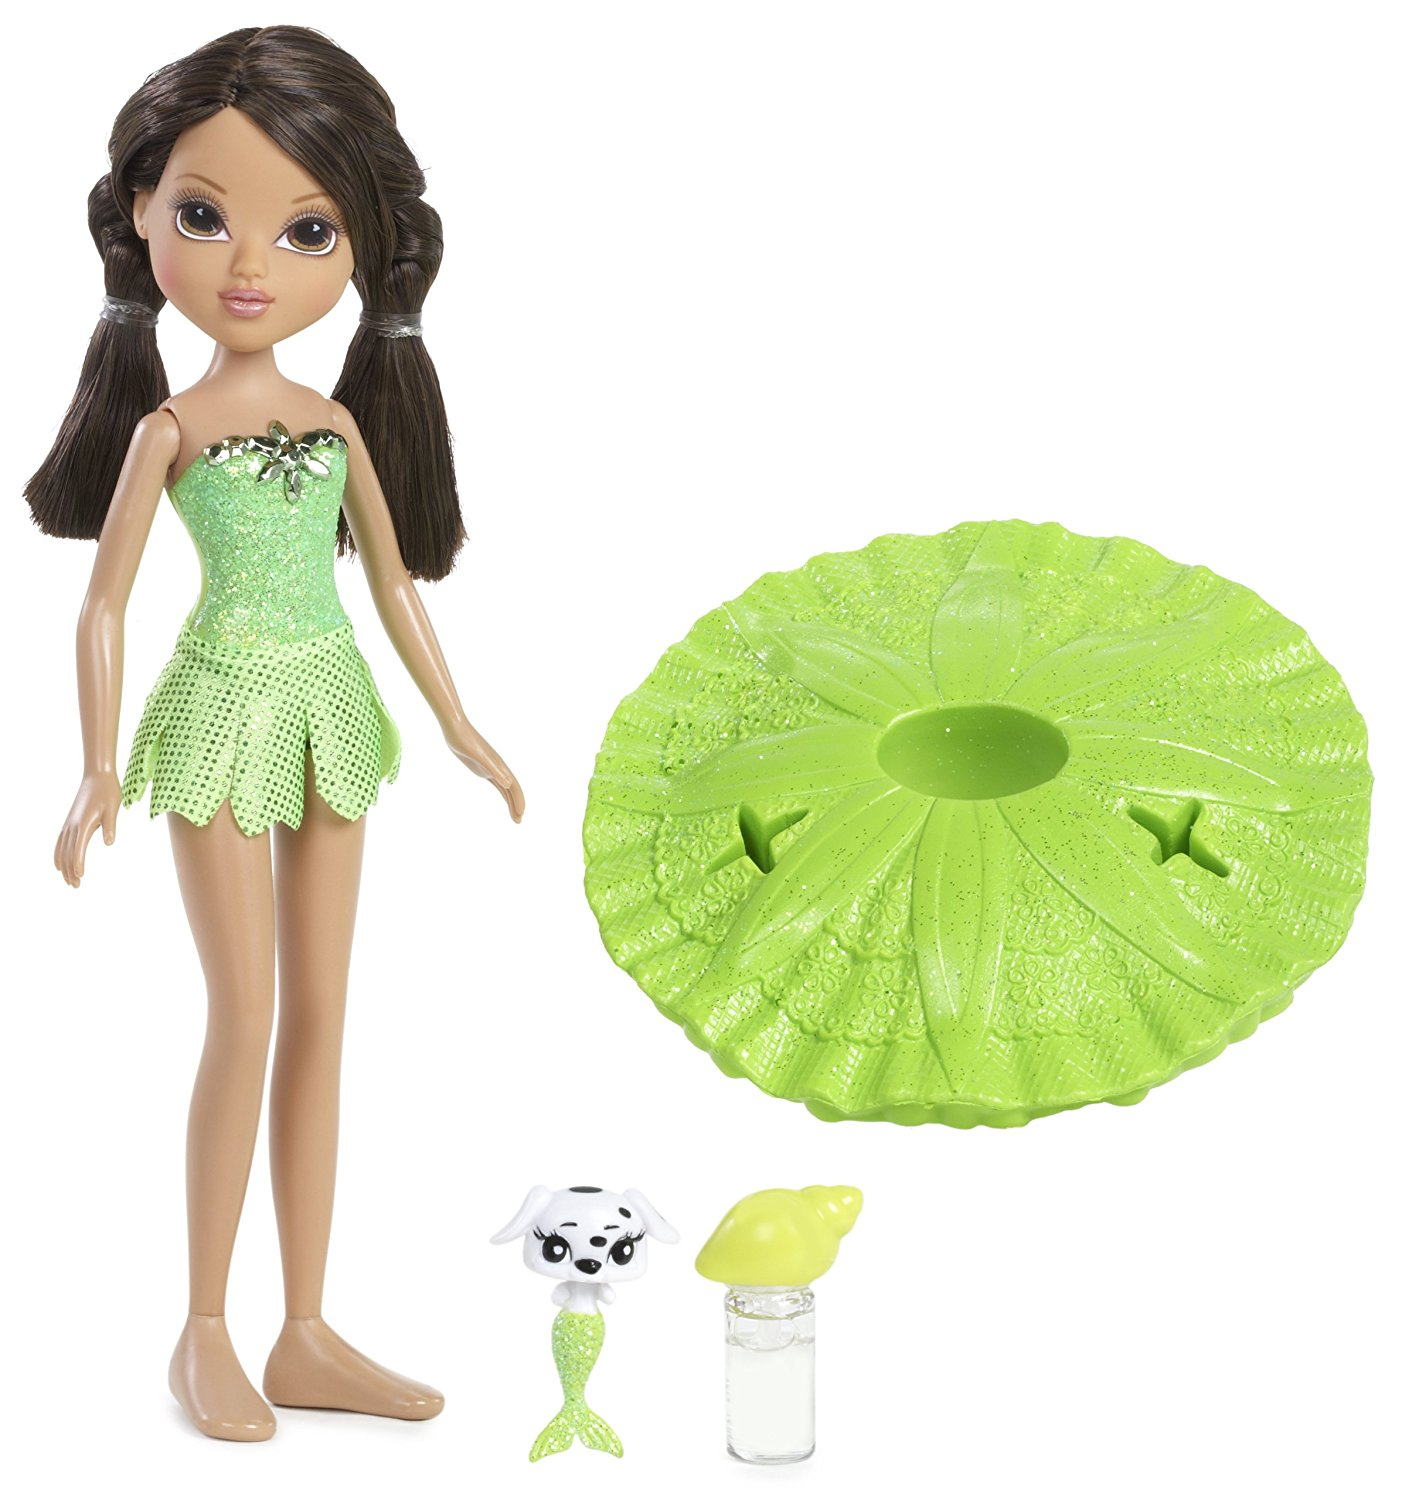 Bubble Bath Surprise - Sophina, Painted sparkling bathing suit outfit with cute petal skirt By Moxie Girlz